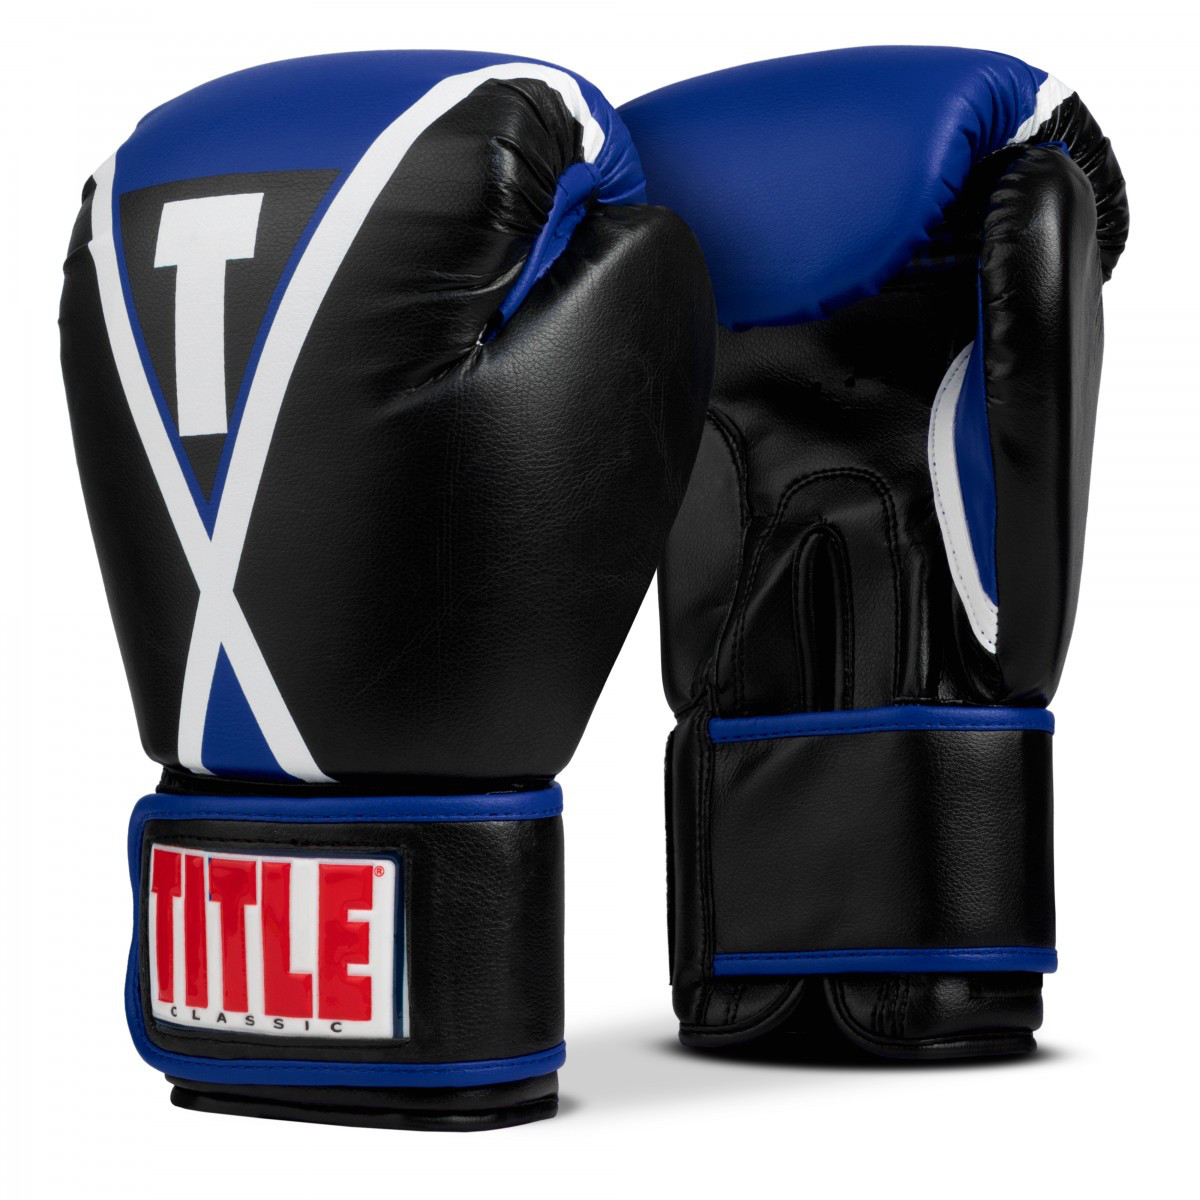 Боксерские перчатки TITLE Classic X-Press Boxing Gloves Black/Blue